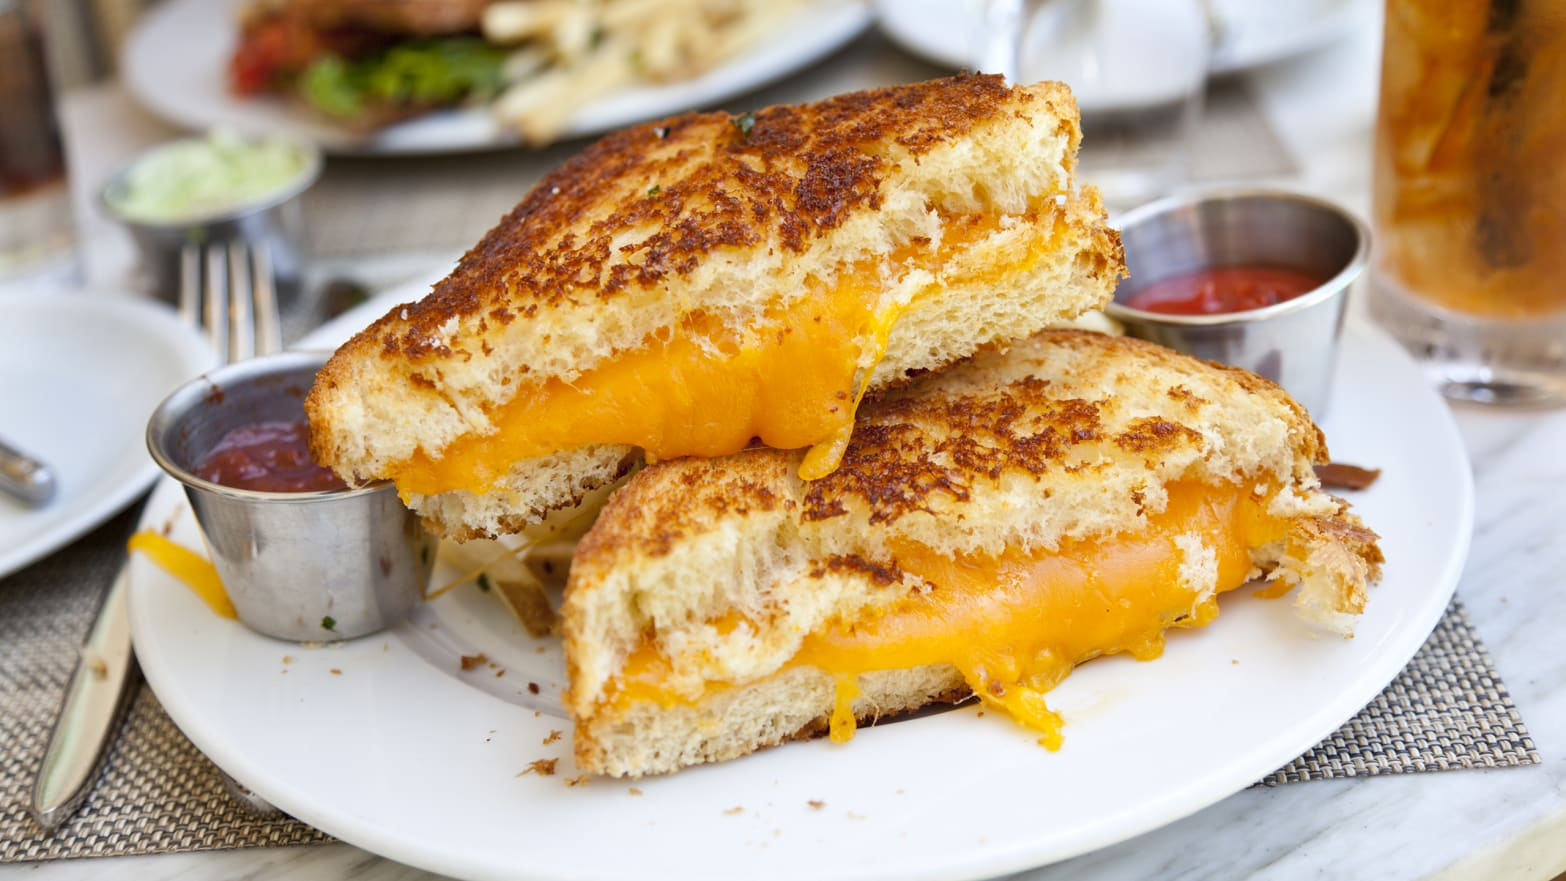 Image result for GRILLED CHEESE SANDWICH GETTY IMAGE